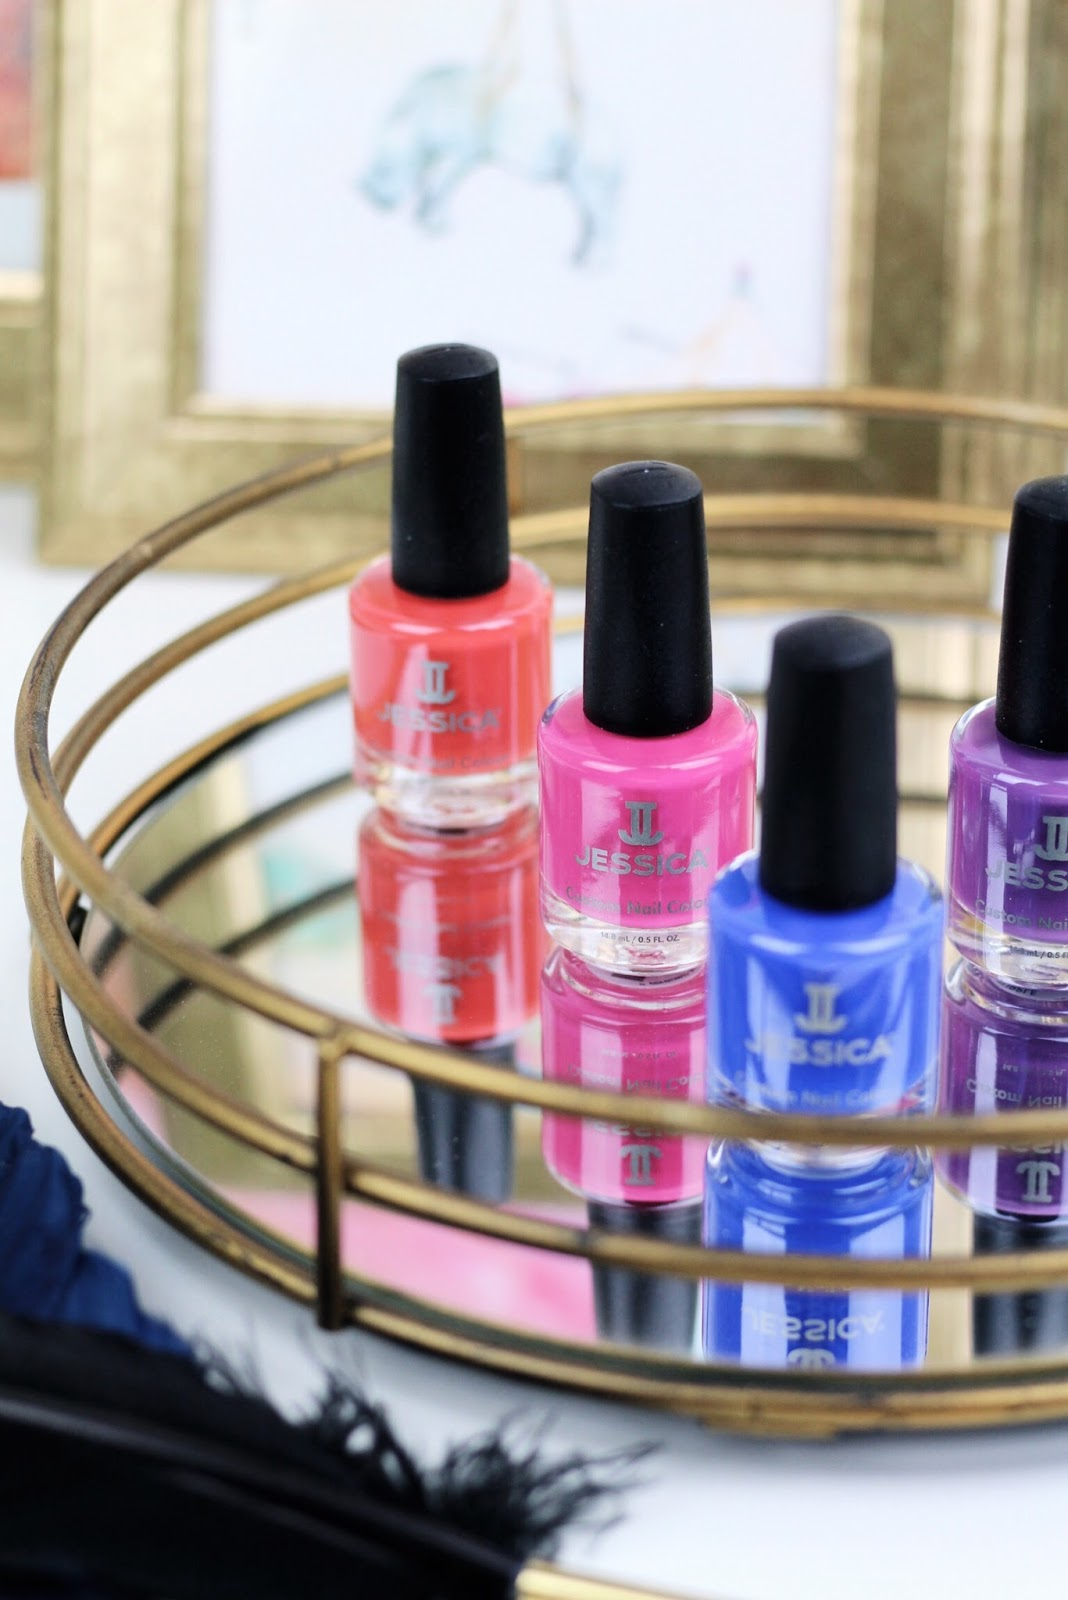 Jessica Nails Prime Collection Beauty Blog Review